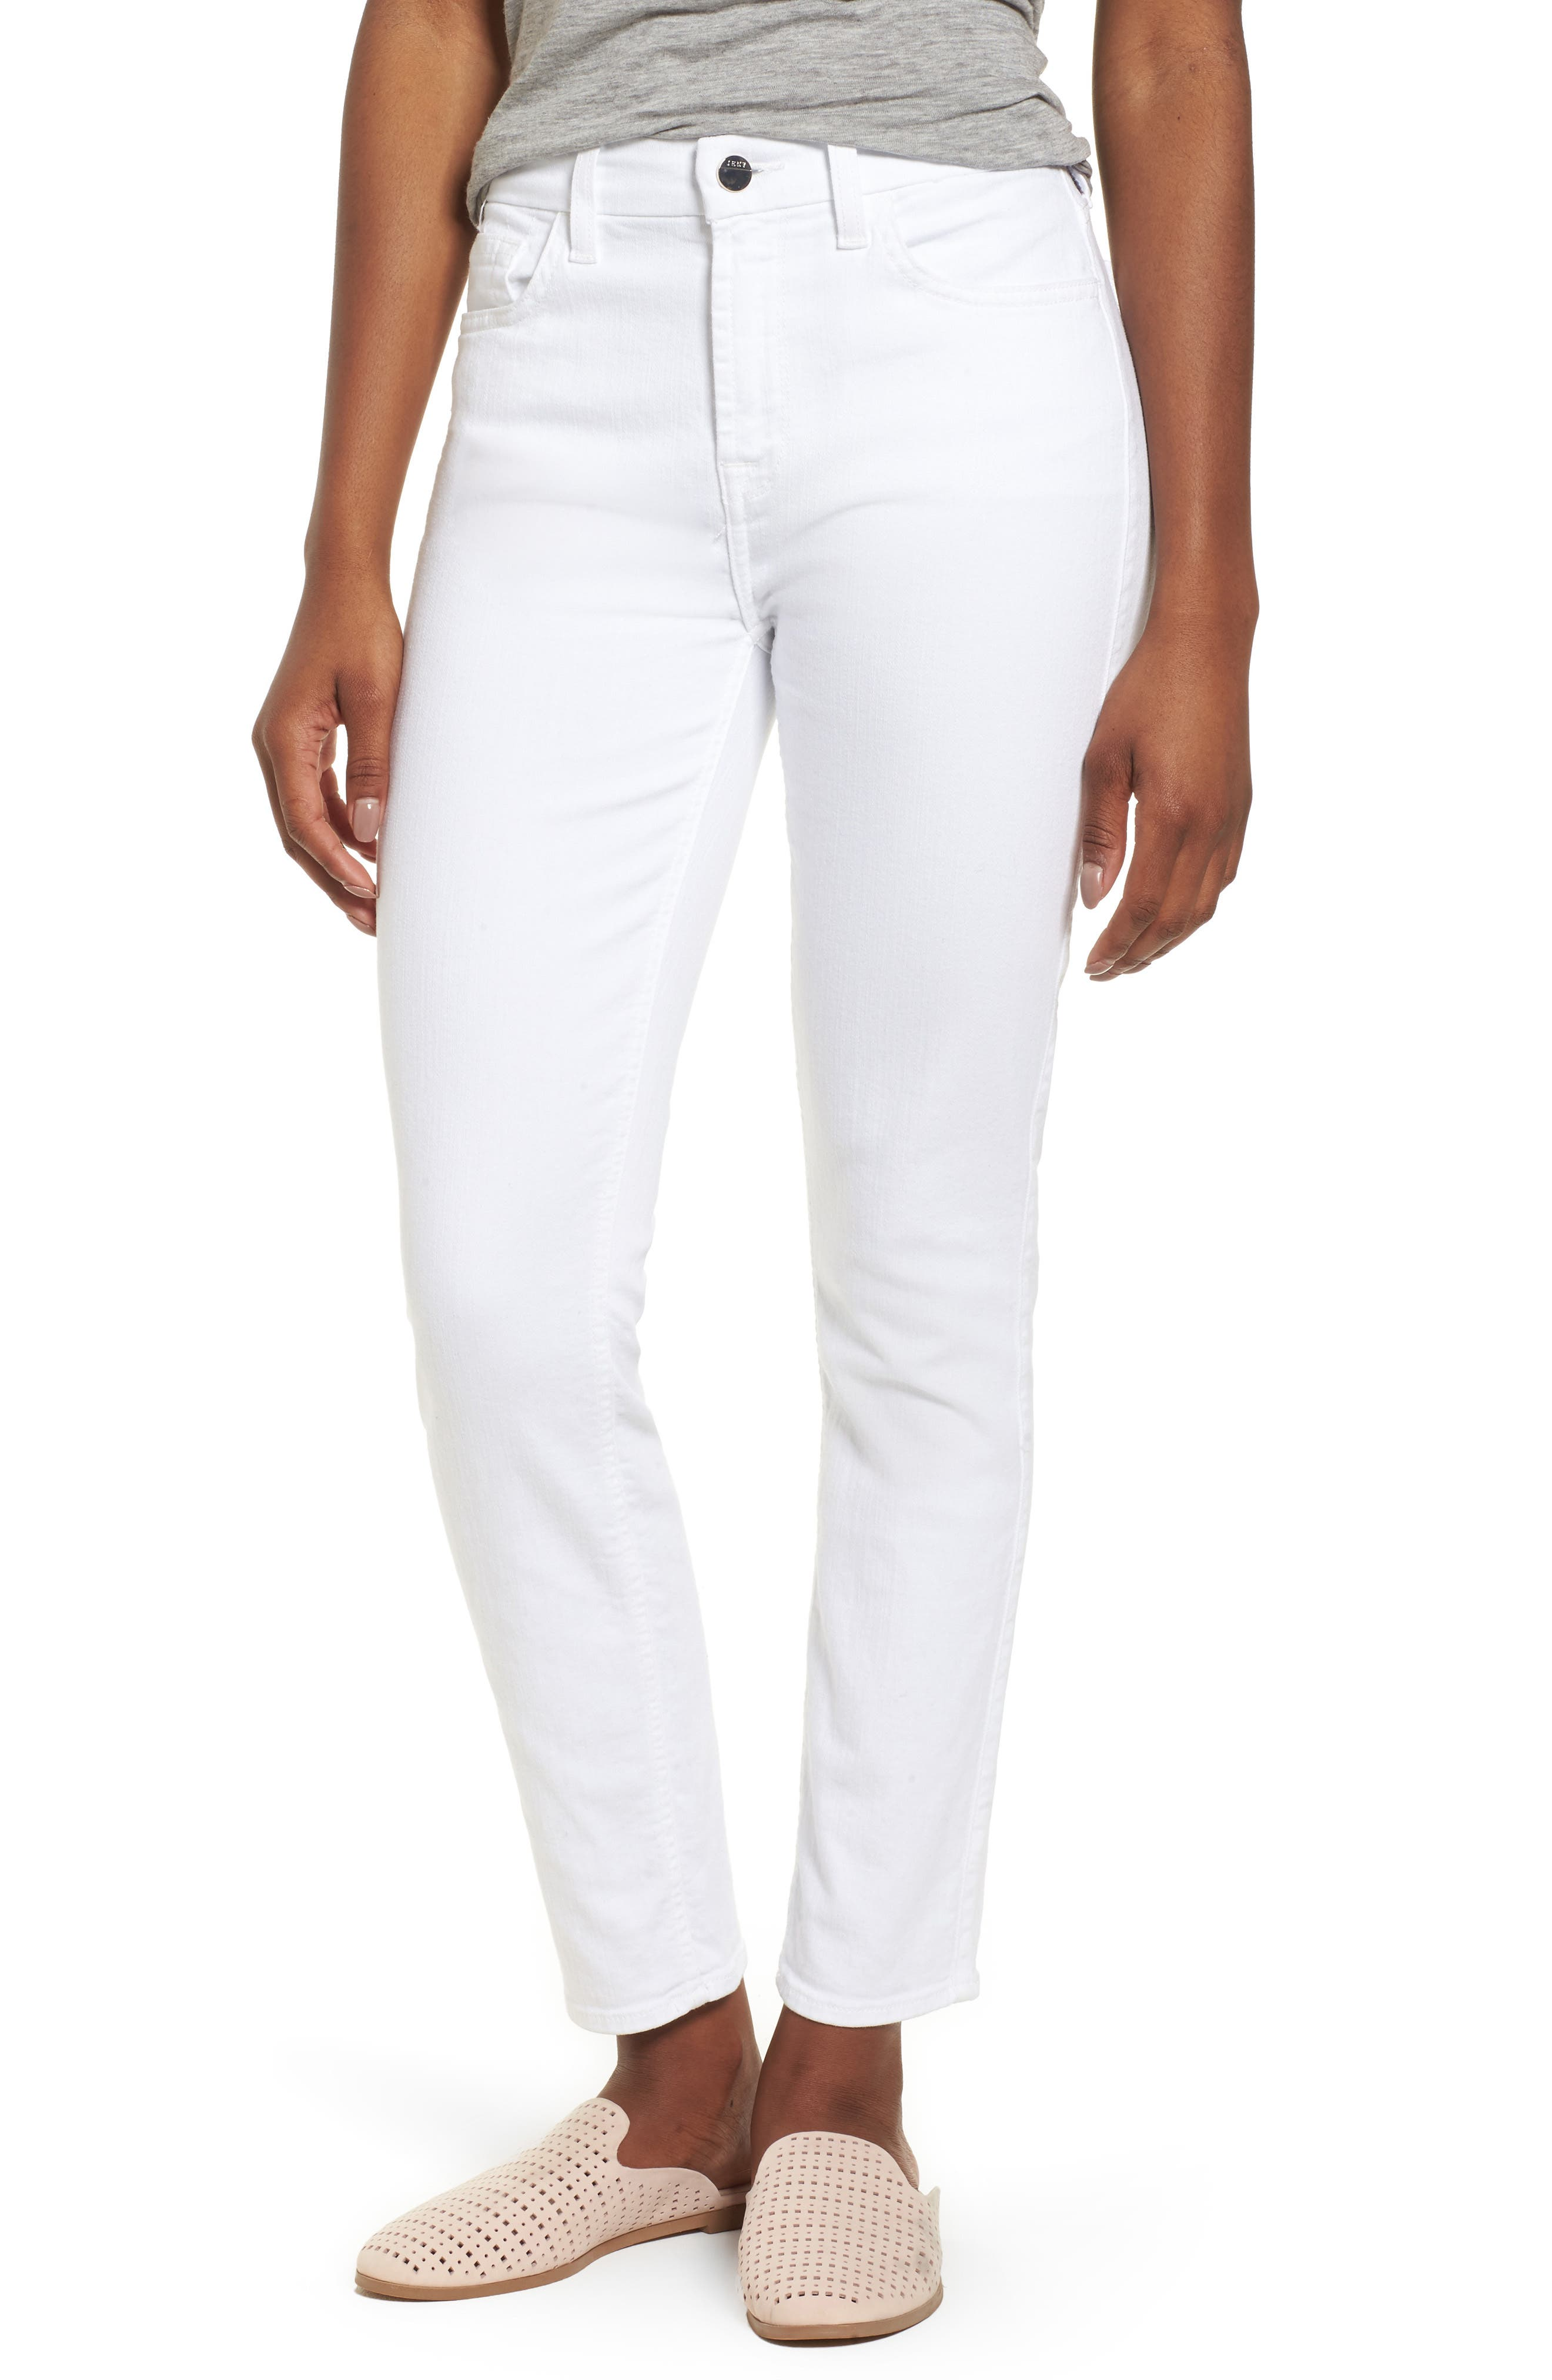 Ankle Skinny Jeans,                             Main thumbnail 1, color,                             White Fasion